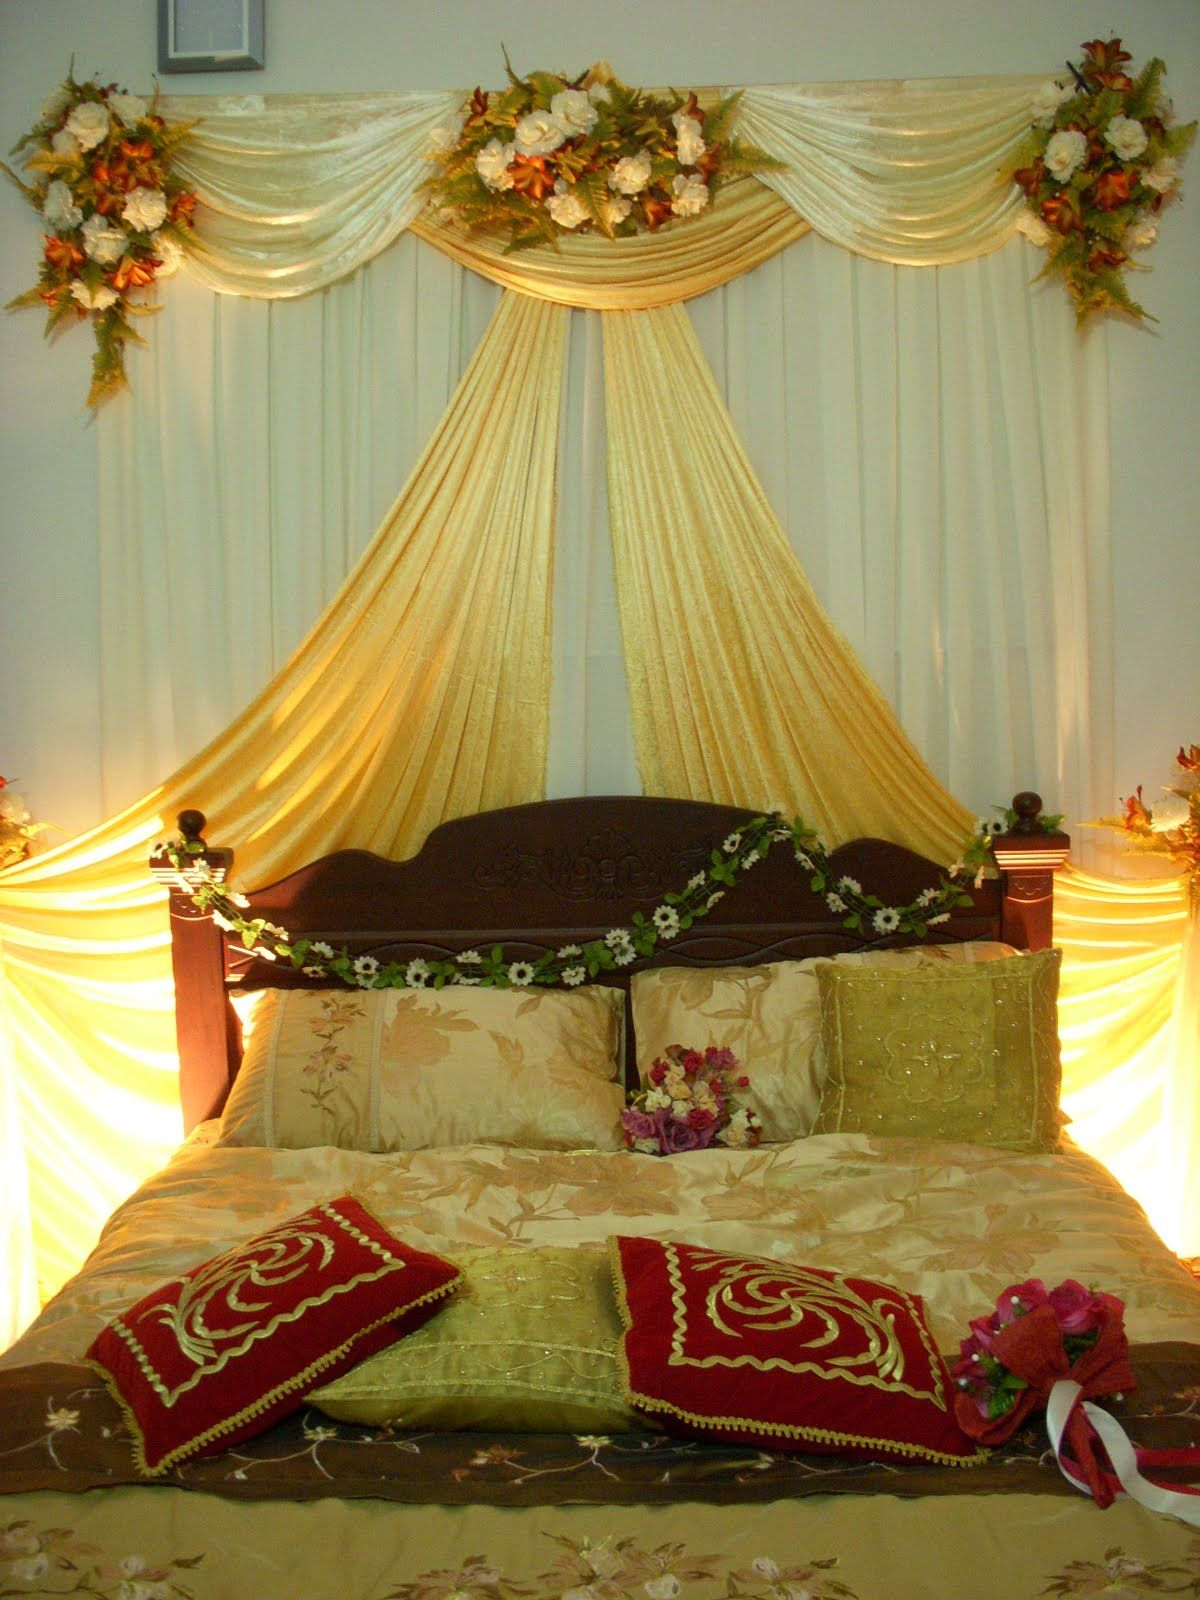 Romantic bedroom at night - Romantic Bedroom Decoration Ideas For Wedding Night Is One Of The Most Attractive Function In Wedding Night Romantic Bedroom Decorating Id